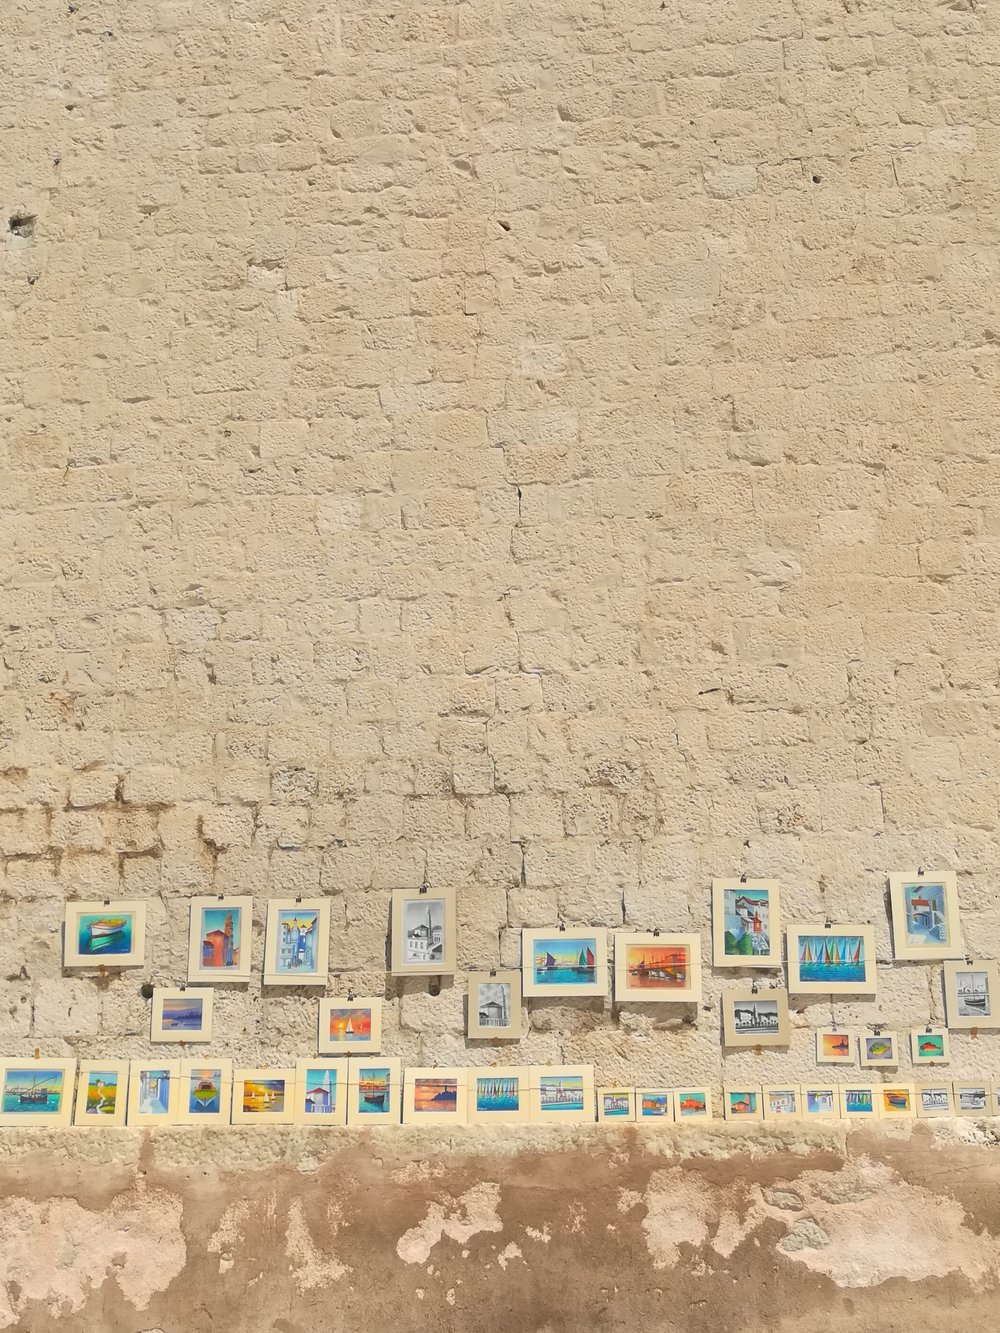 Local artists work against bricks that could tell 1000 stories